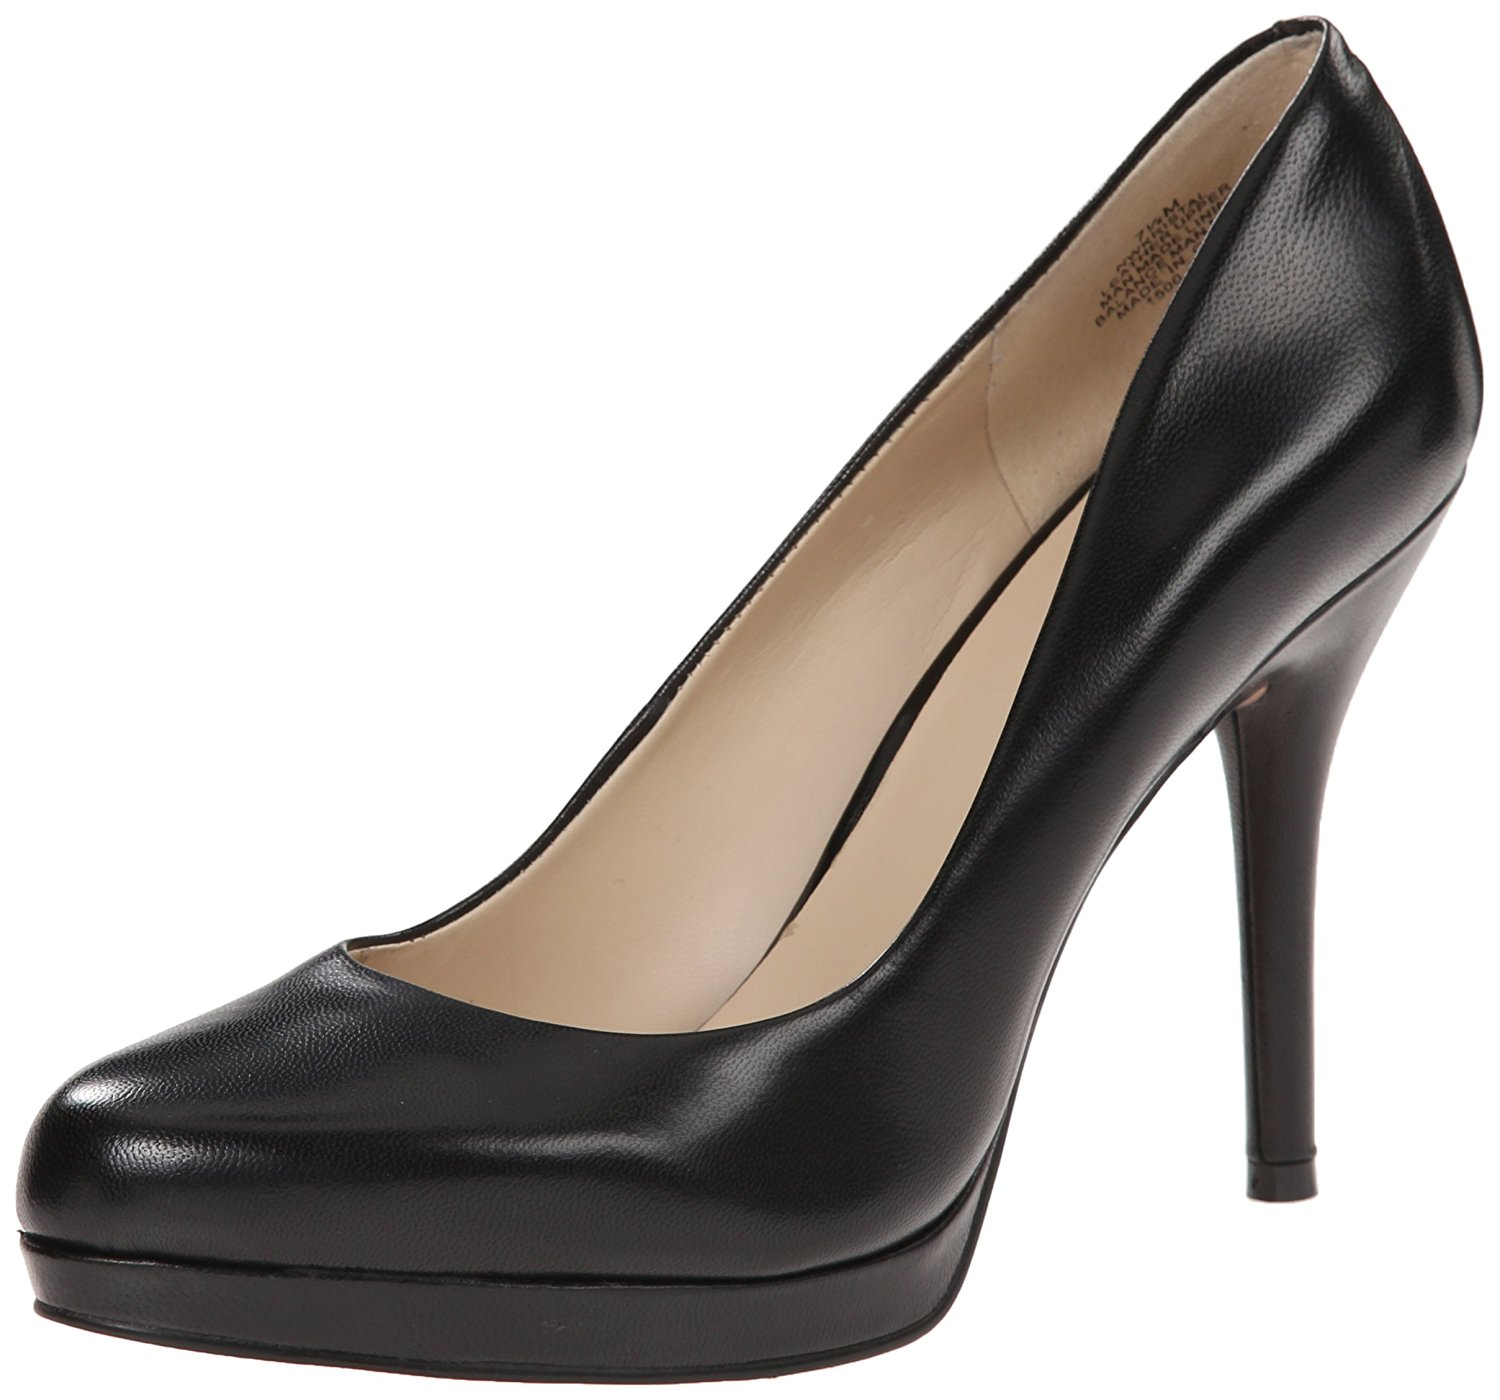 Nine West Womens KRISTAL Closed Toe Platform Pumps, Black Leather, Size 7.0 kje0